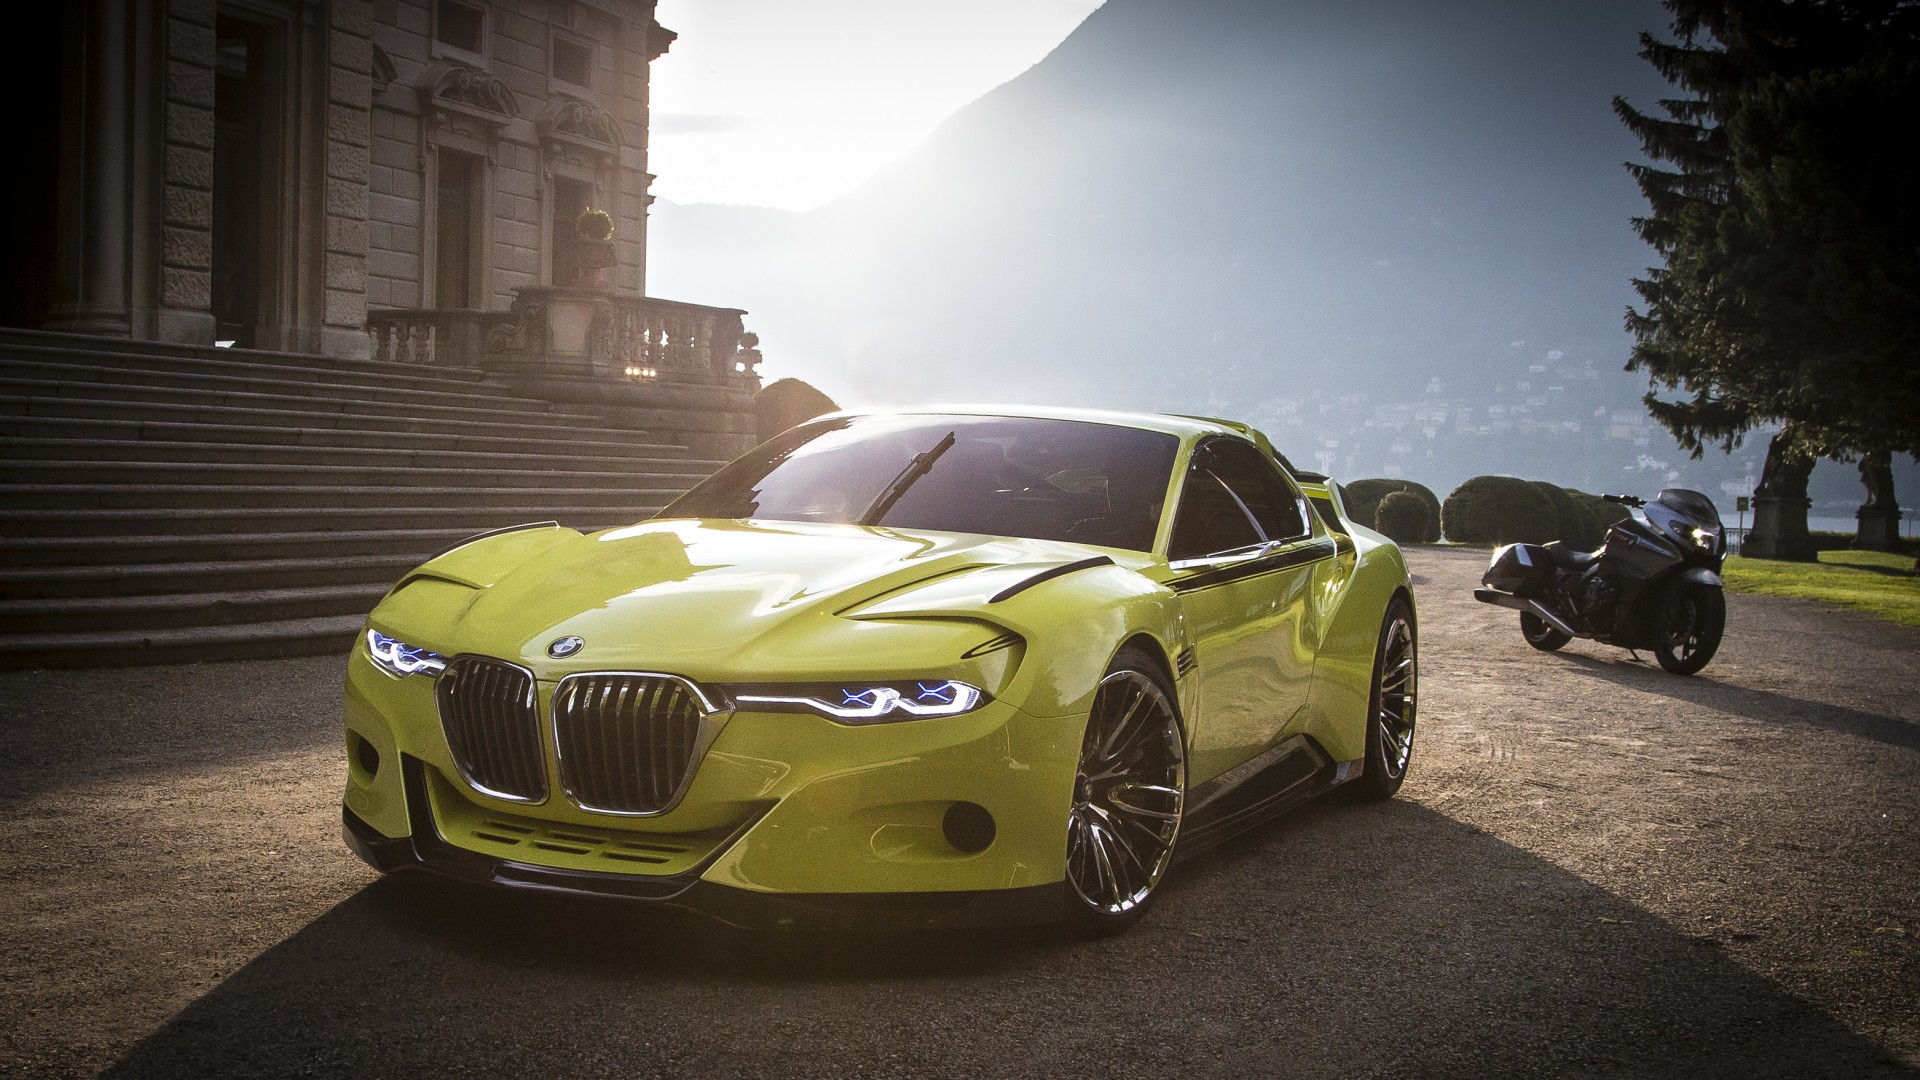 wallpaper bmw 3 0 csl yellow sports car bmw xdrive sdrive cars bikes 7458. Black Bedroom Furniture Sets. Home Design Ideas